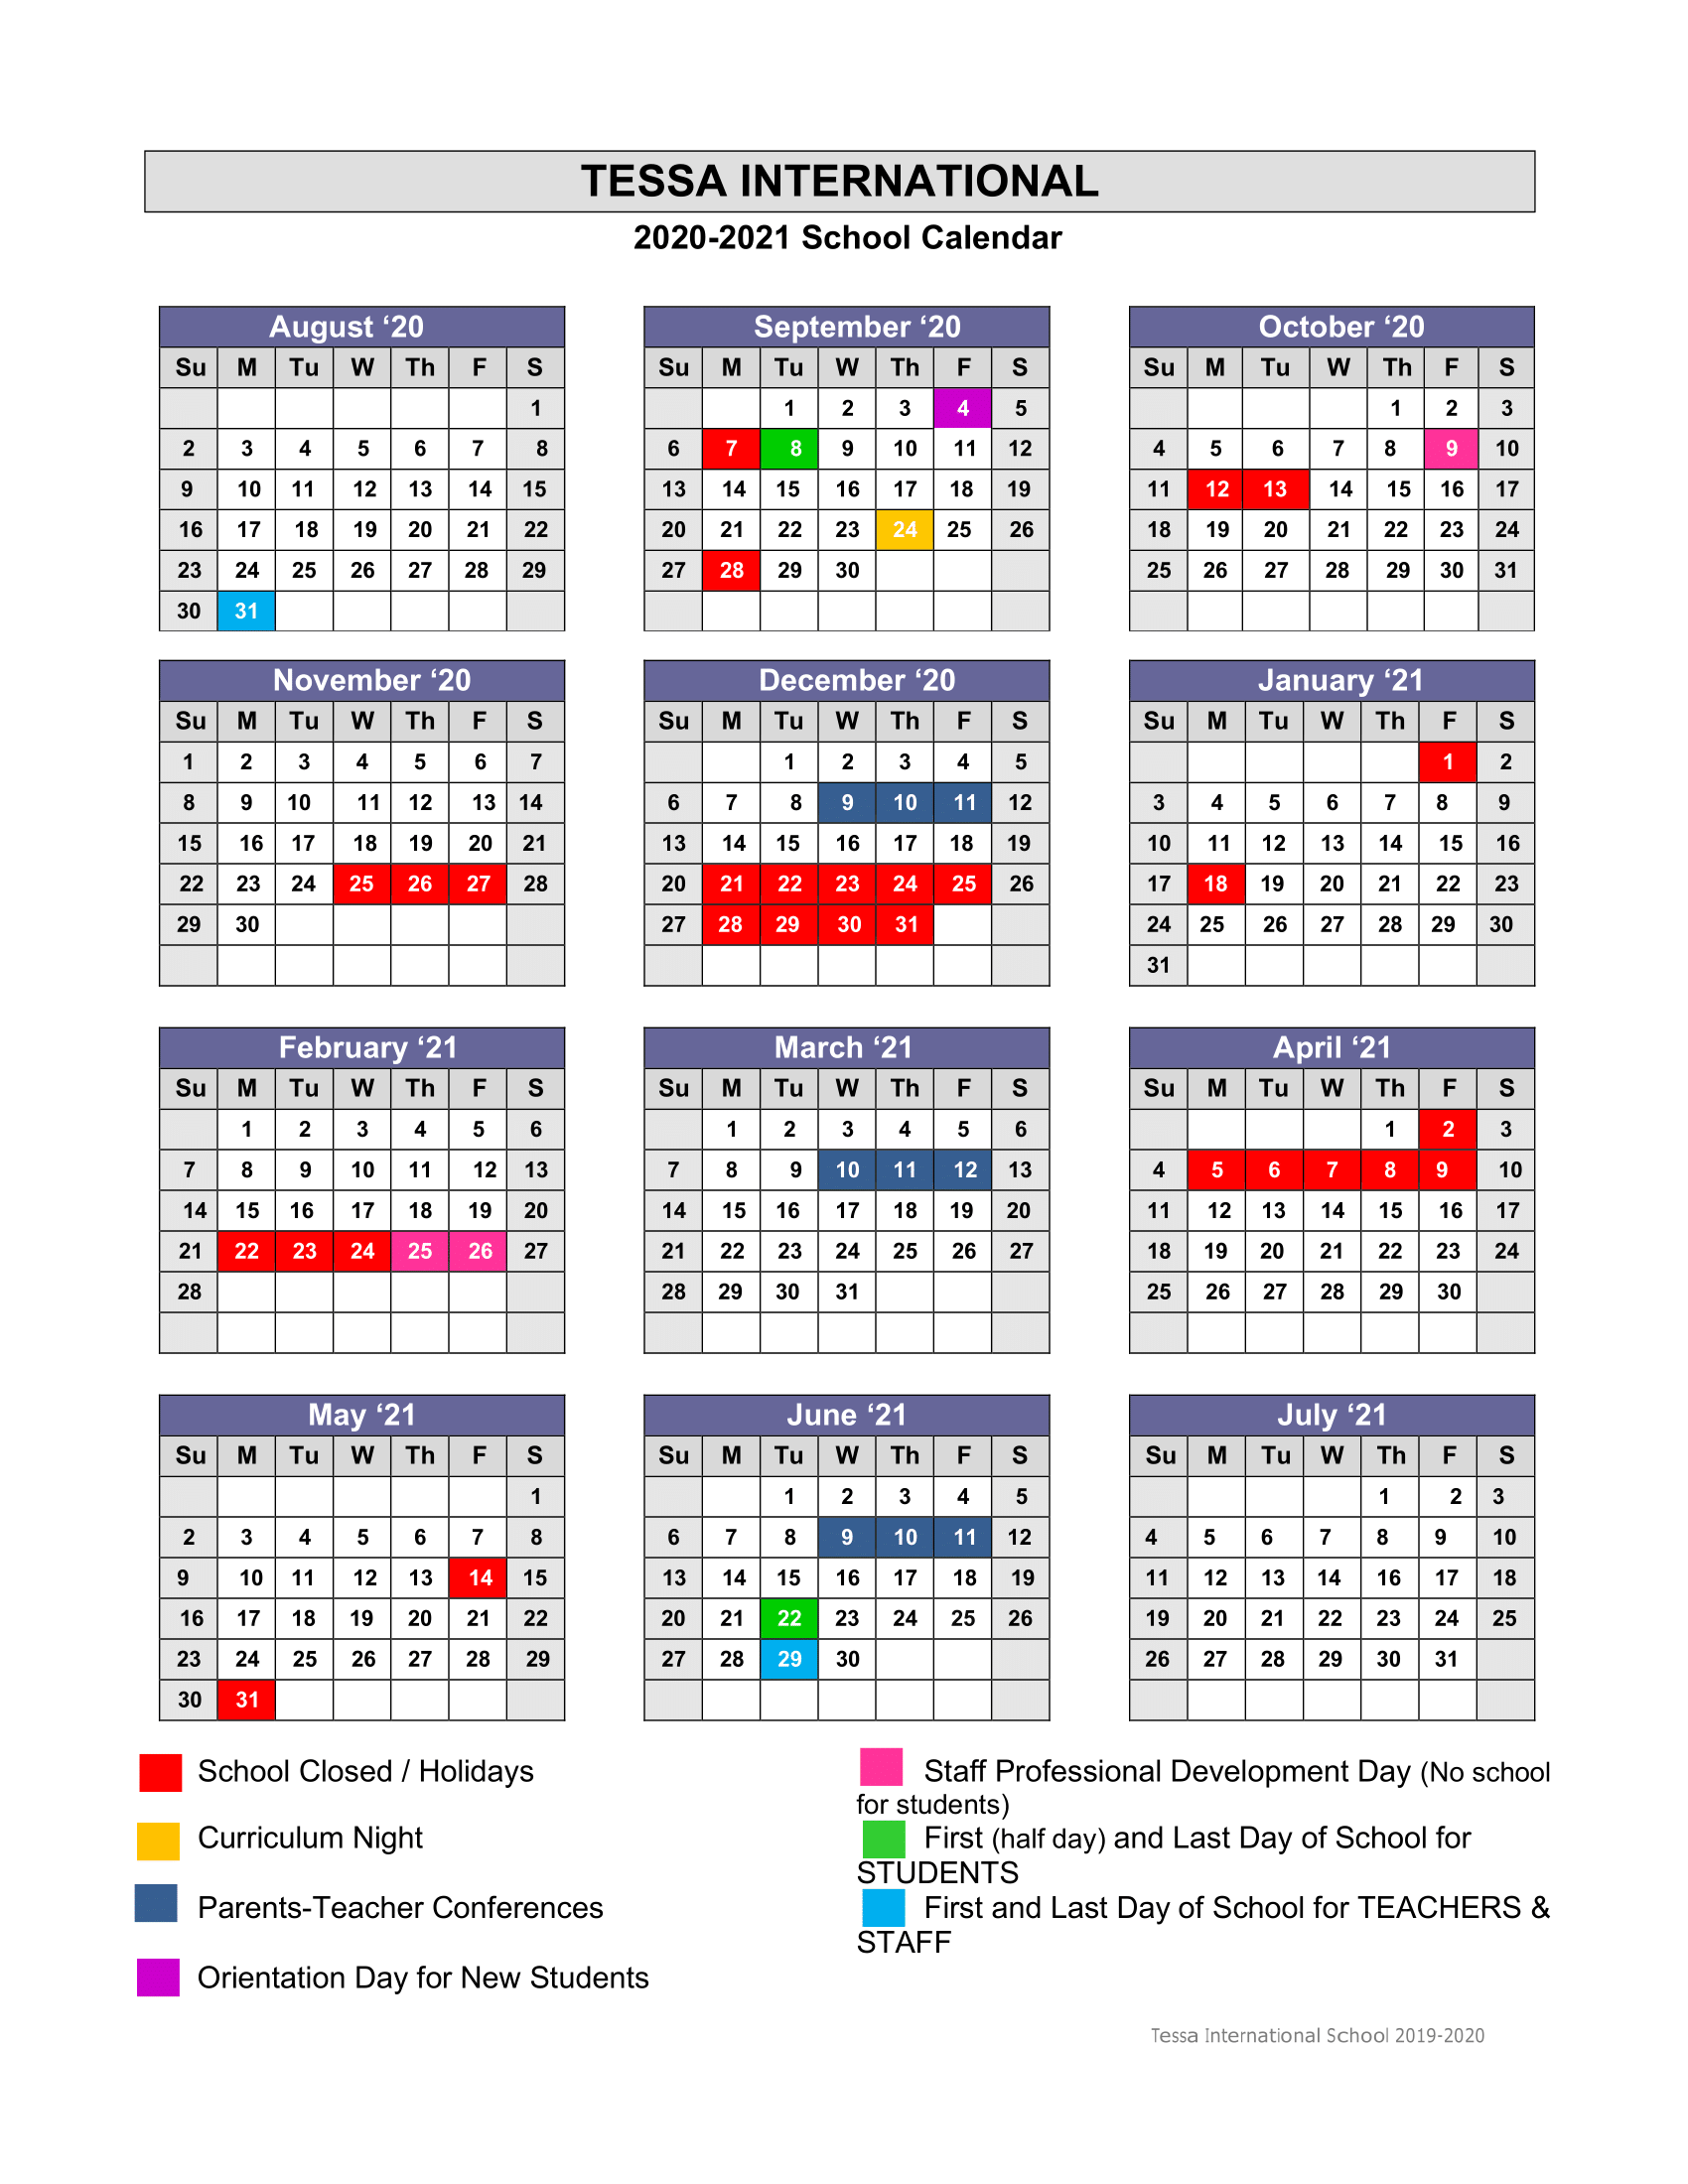 Schoolcalendar 2020 2021 1 - Tessa International School Pertaining To Academic Calender For Middlesex County College For 2021